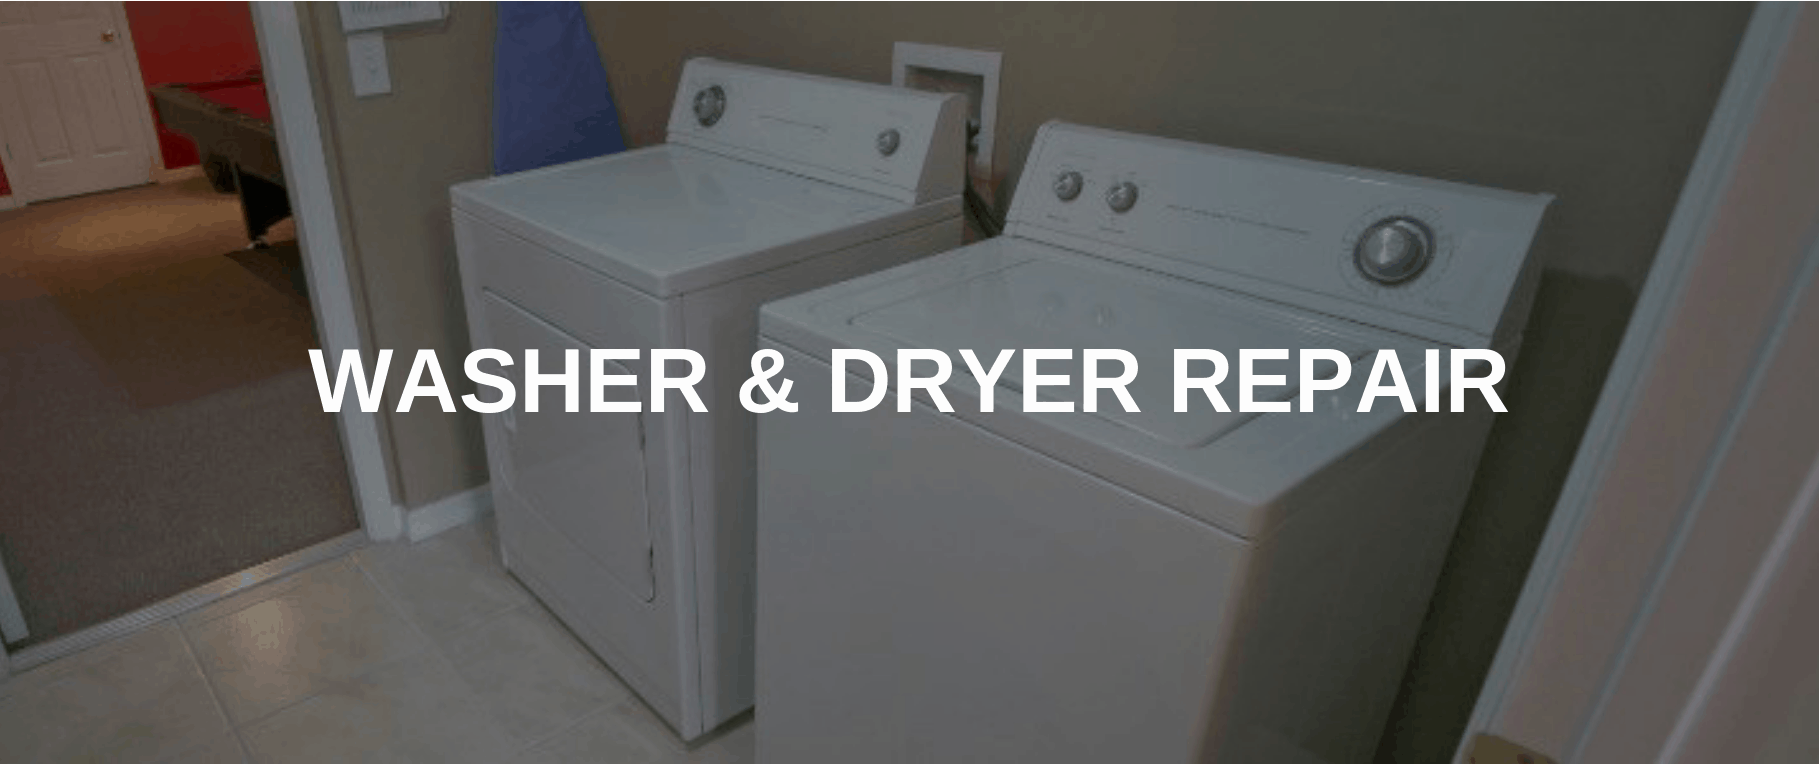 washing machine repair reston